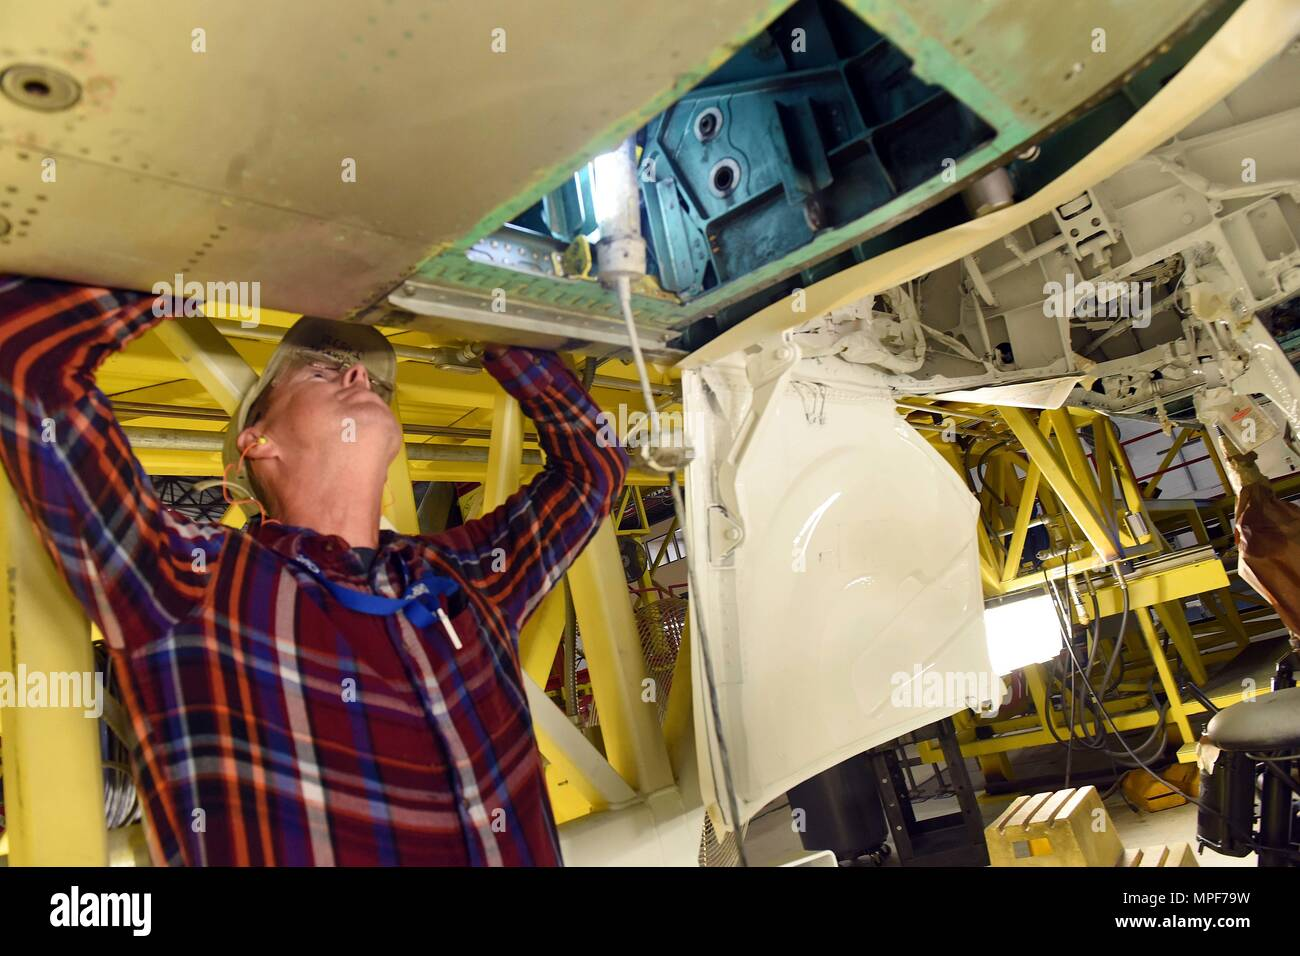 wiring harness stock photos wiring harness stock images alamy kenneth johnson 561st aircraft maintenance squadron electronics technician examines a wiring harness on an